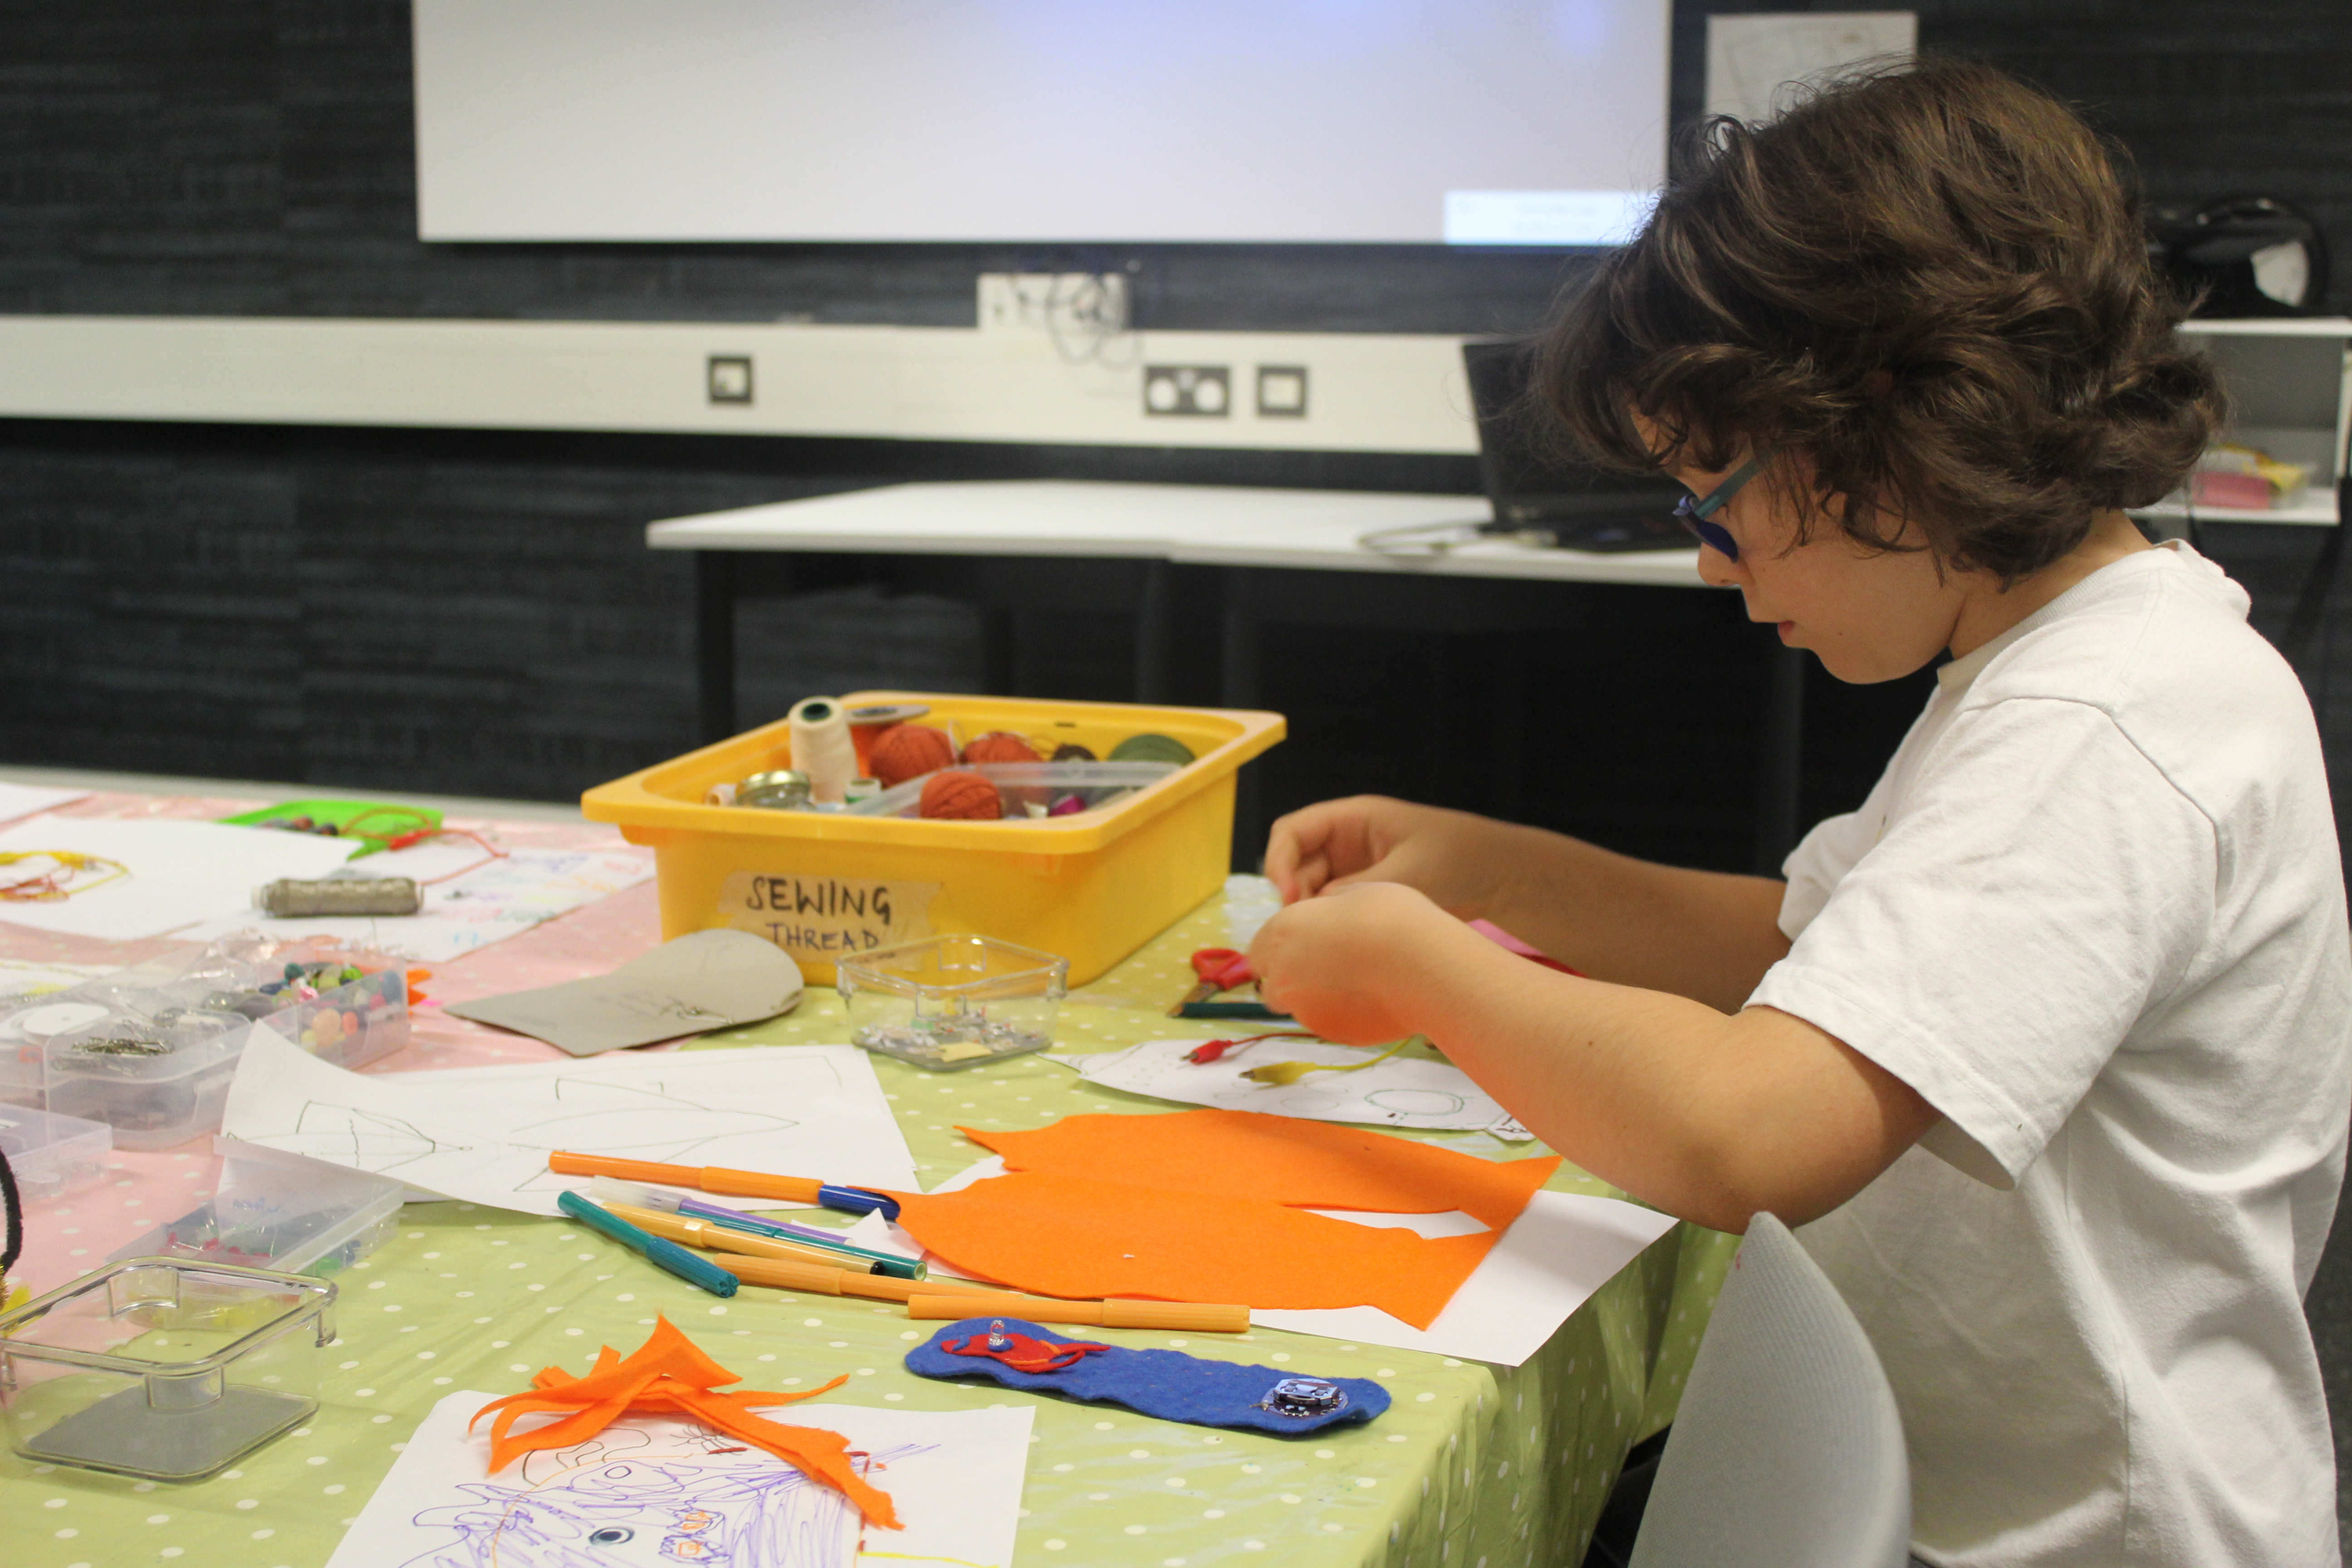 Upcoming: KidsQUAD - Creative activities for children aged 7-11, without grown-ups!